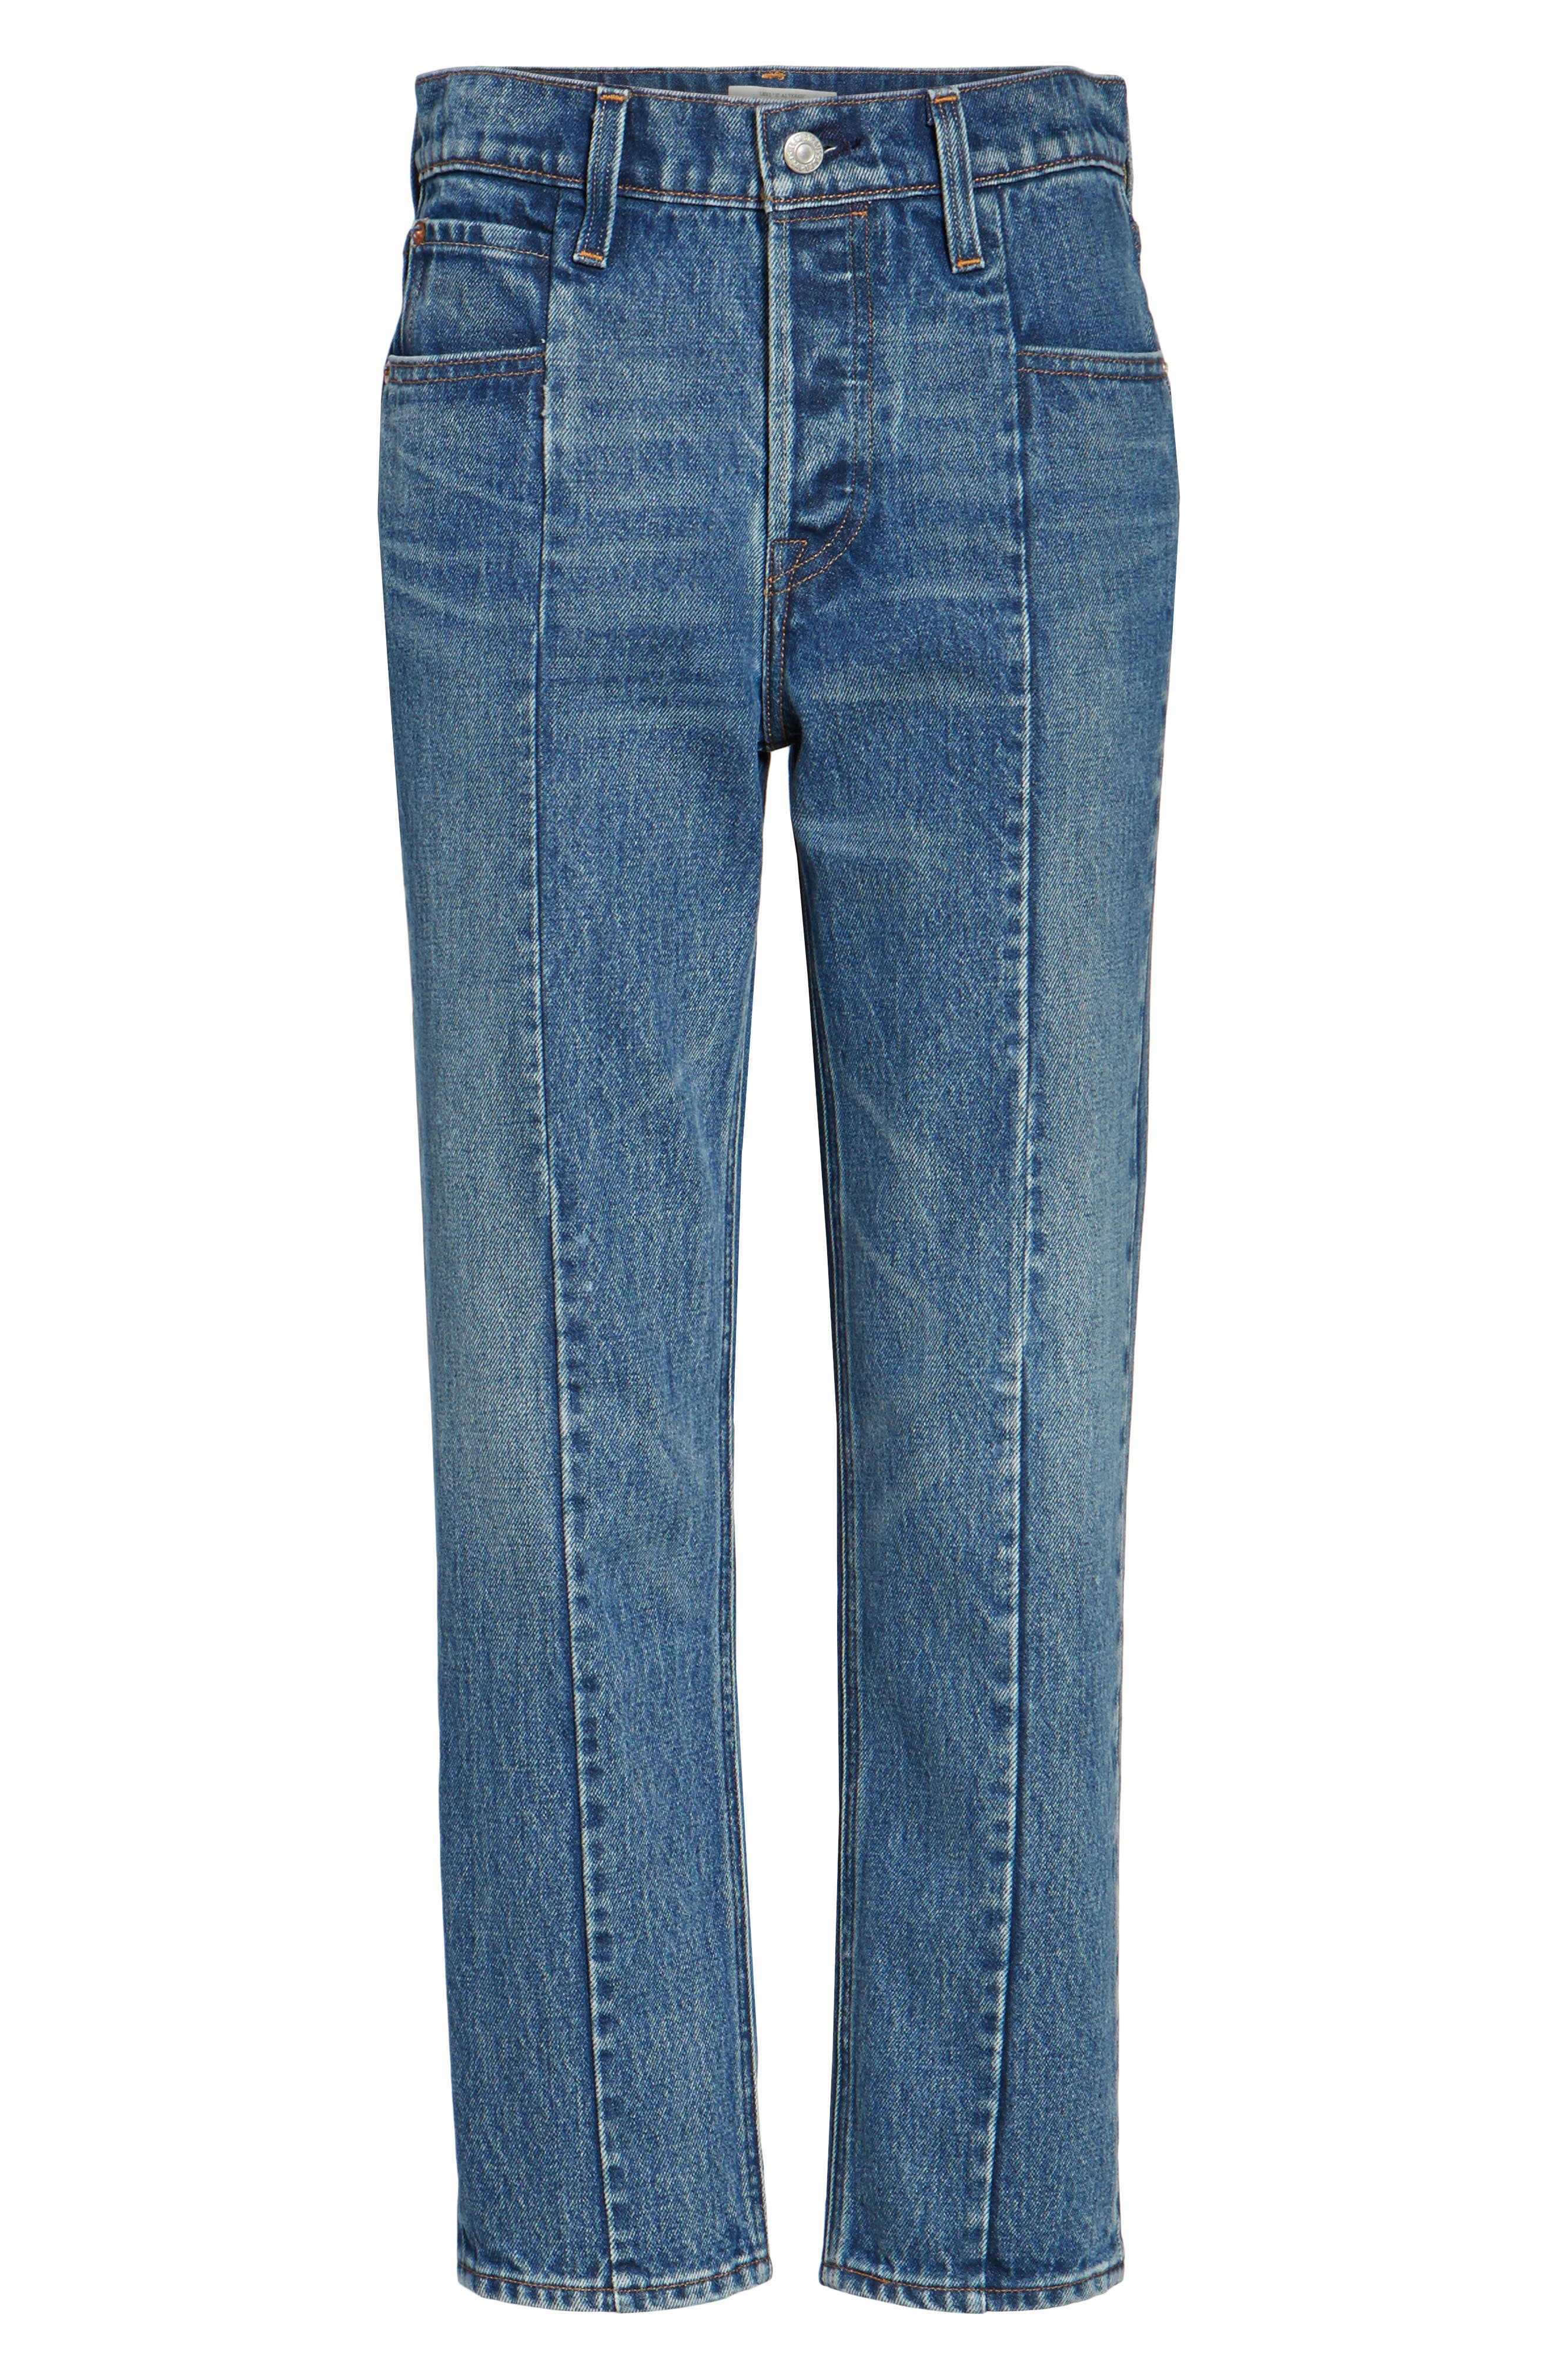 Wedgie Altered Straight Leg Crop Jeans,                             Alternate thumbnail 6, color,                             No Limits